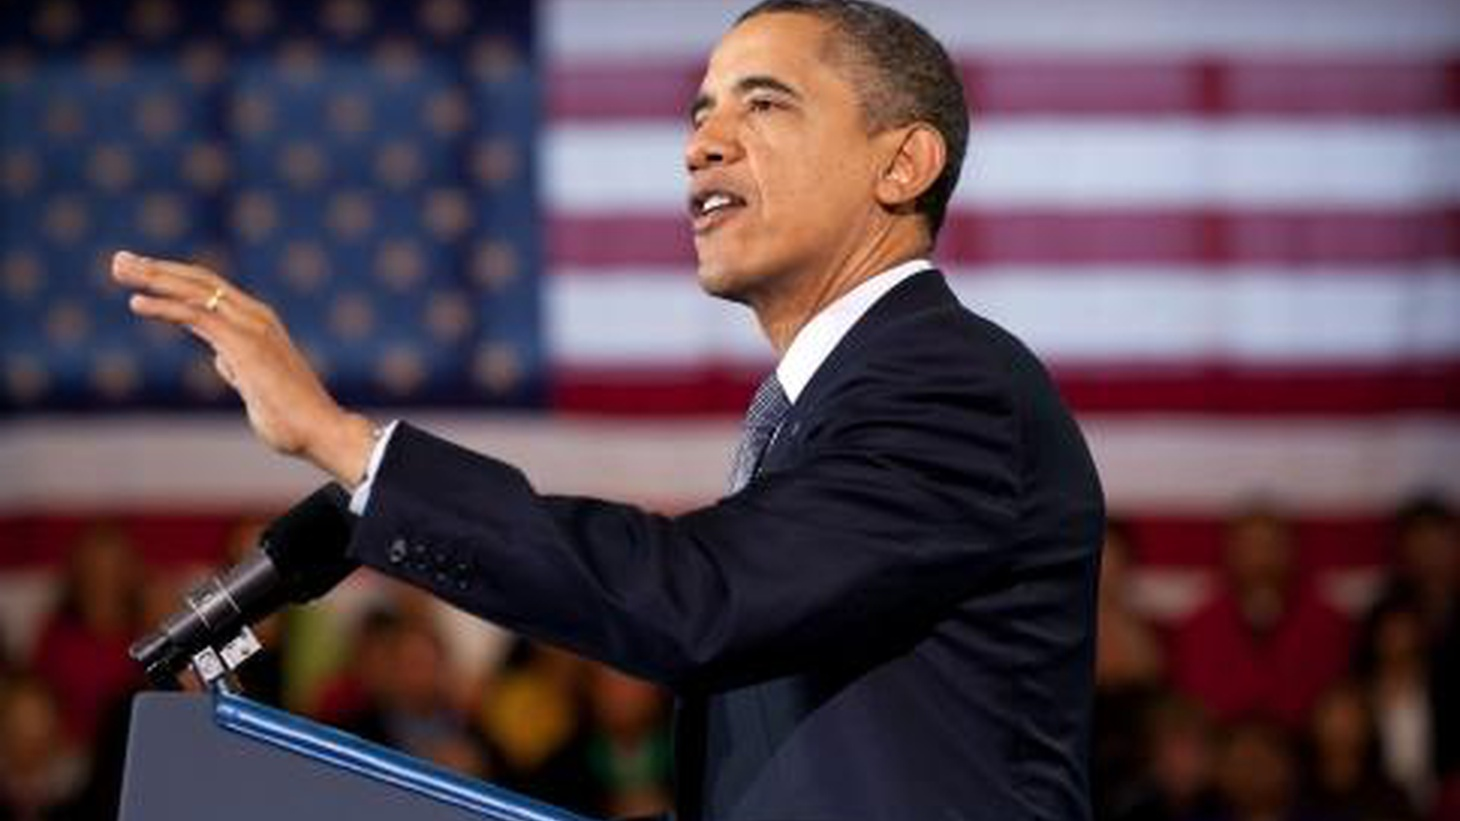 Progressive Democrats are applauding the campaign themes laid out by President Obama this week. How does he sound to liberals? Republicans? Centrists who decide elections?